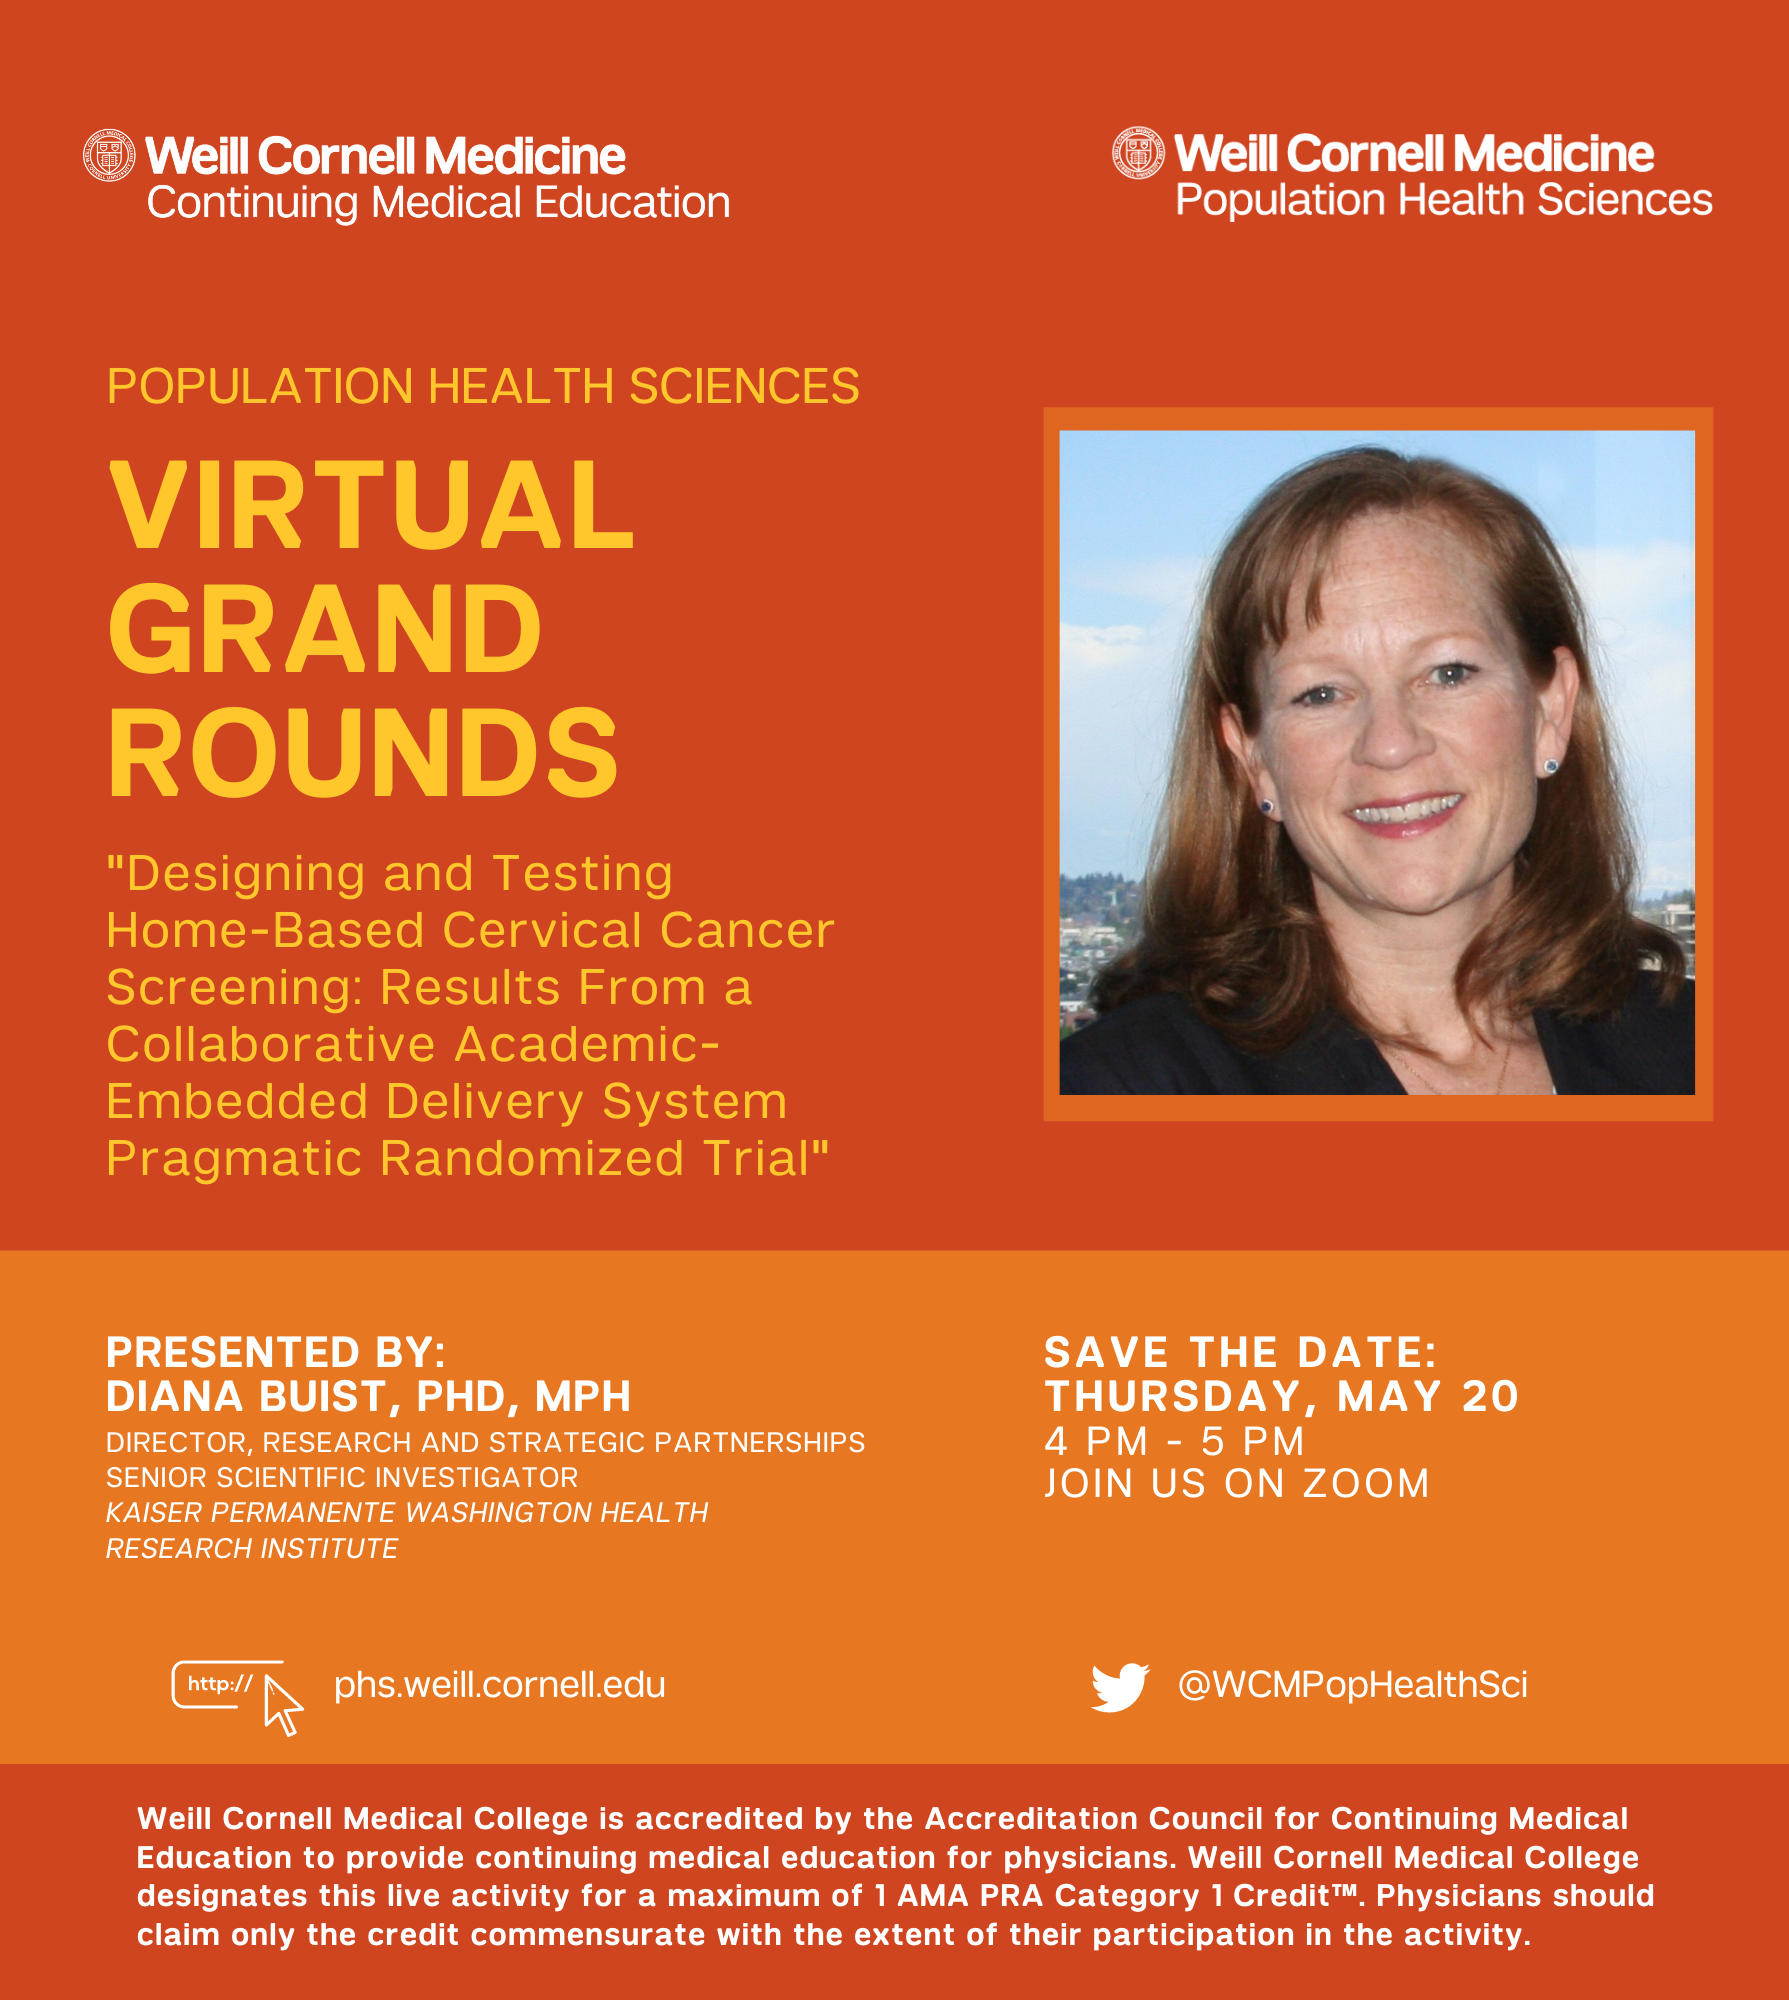 Diana Buist Grand Rounds Flyer